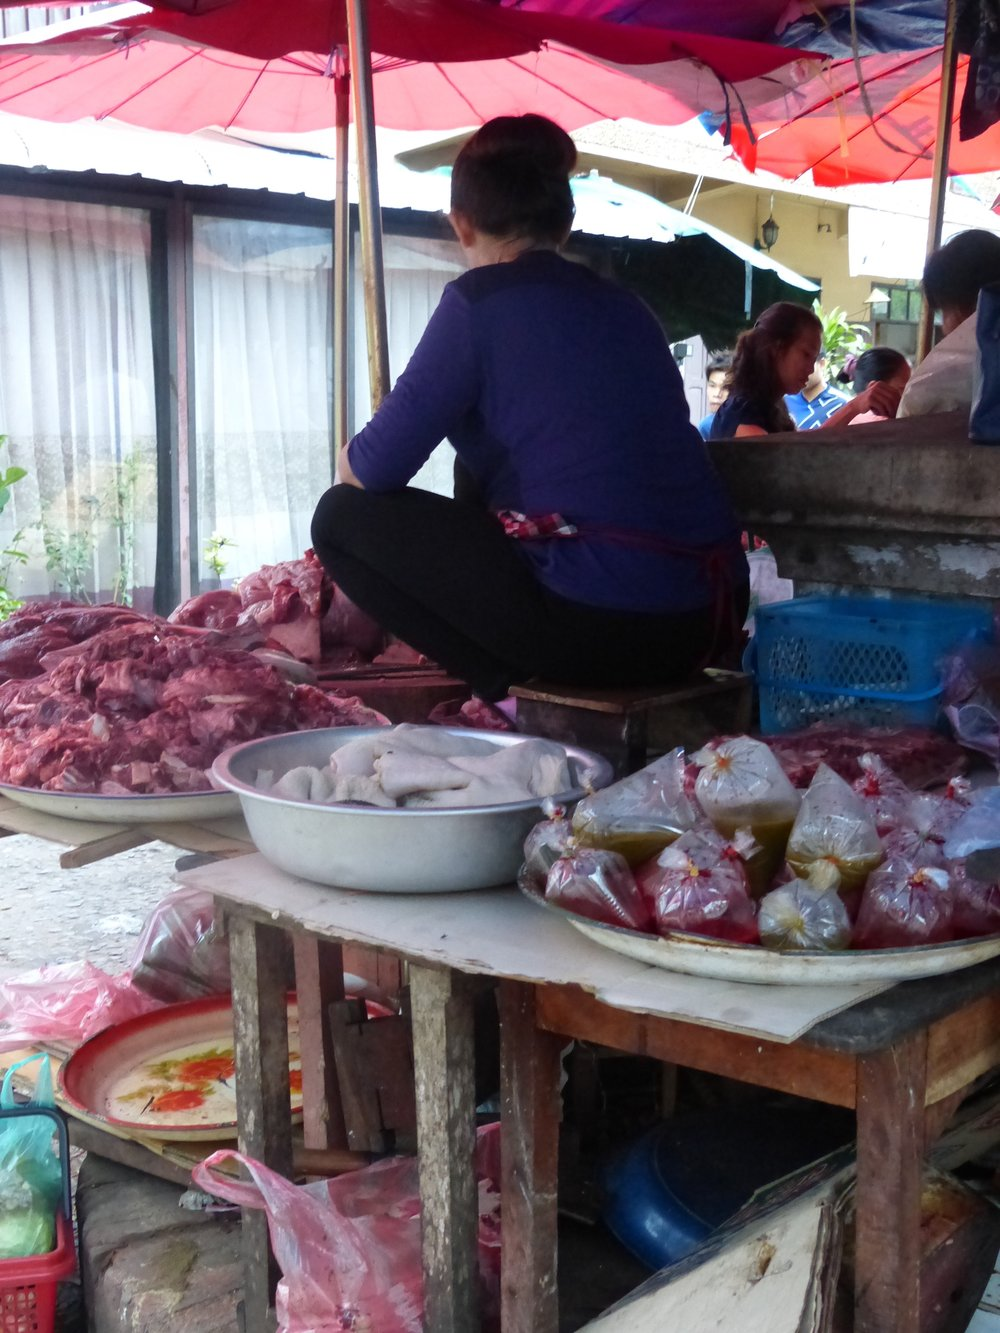 Wait, and butchers get up on the table in Laos?